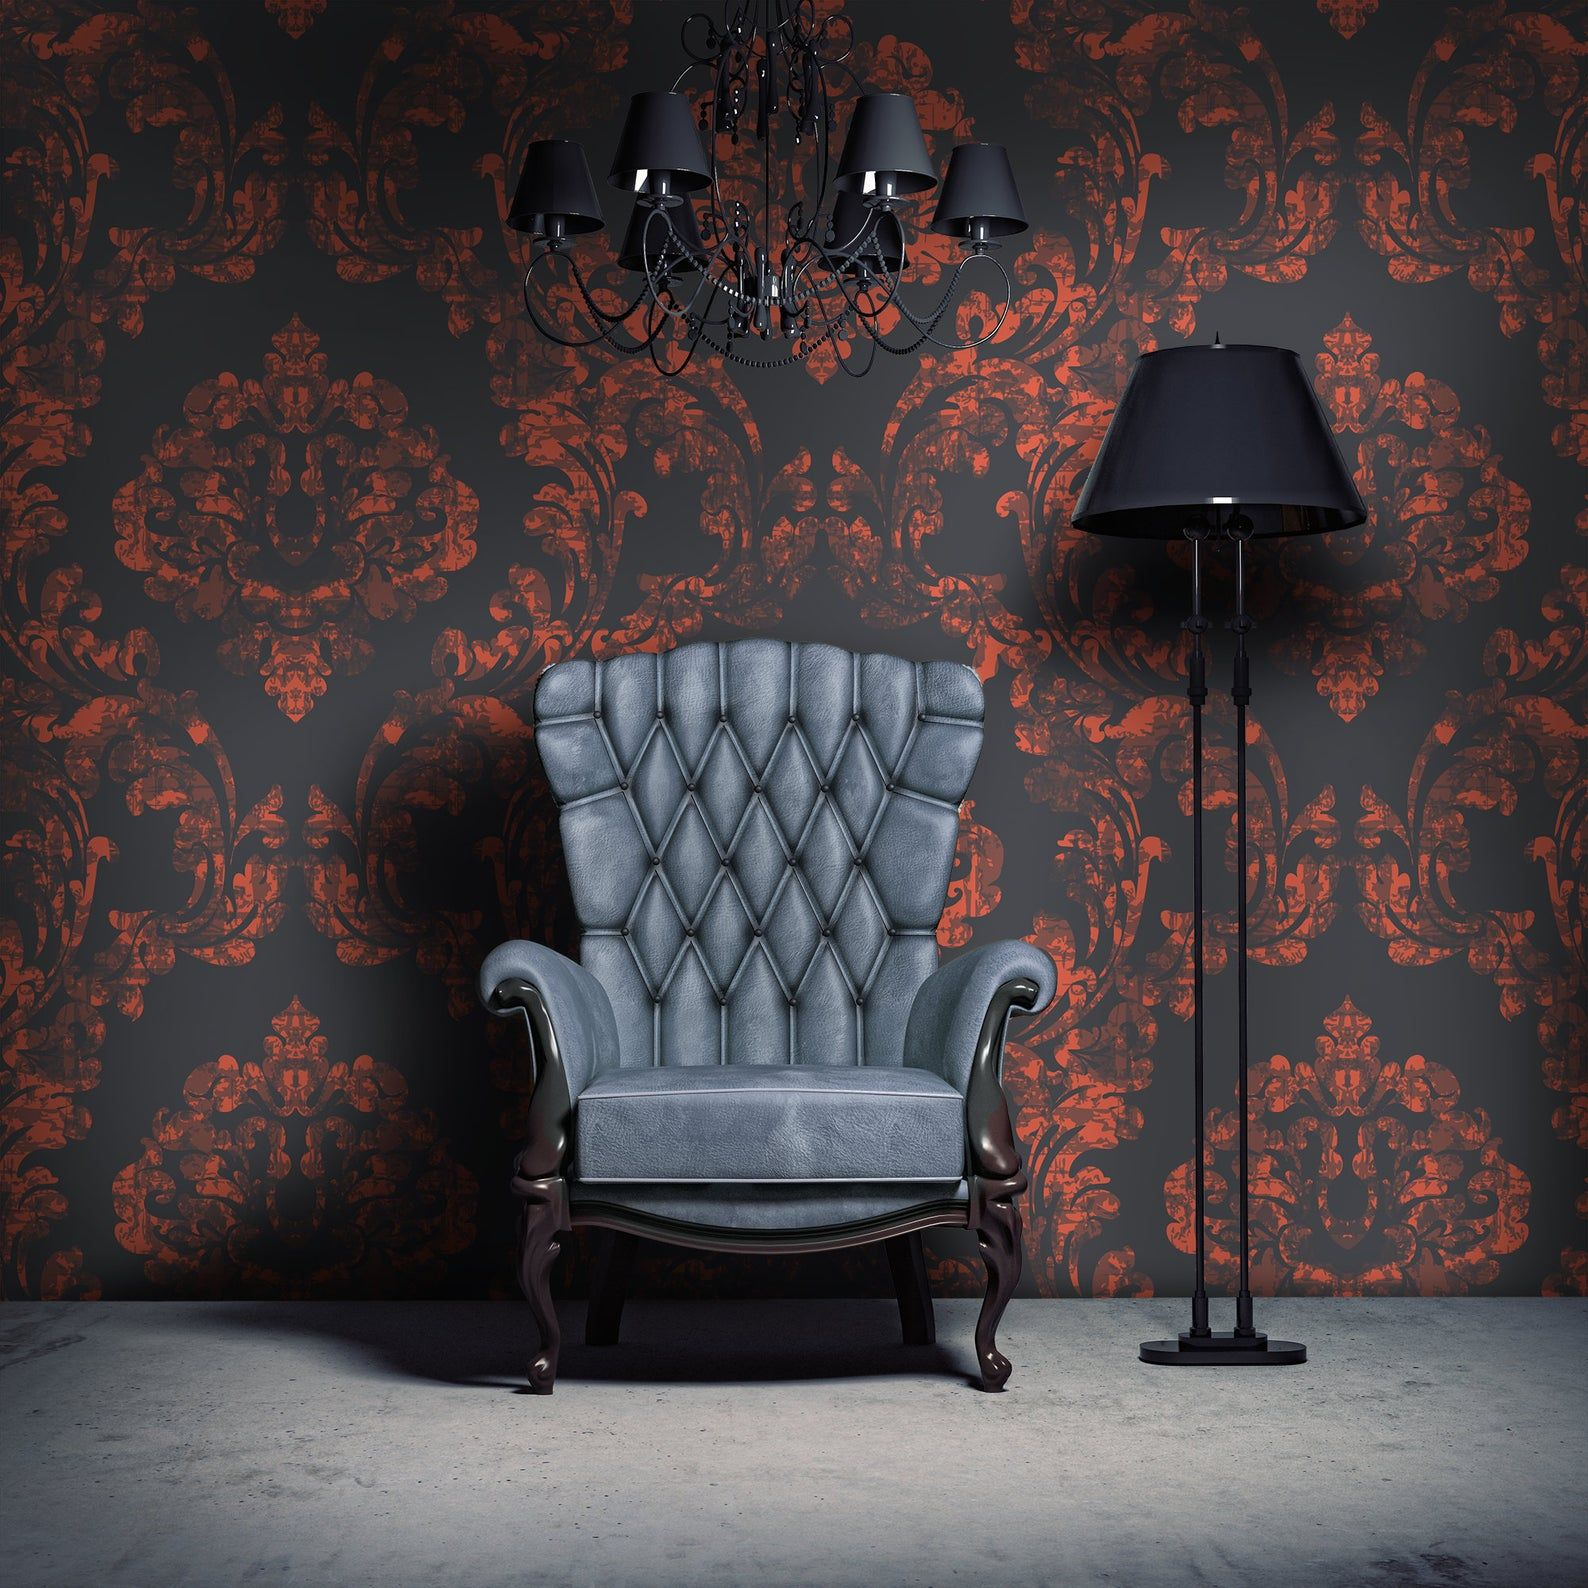 Dark Gothic Damask Mural Vintage Victorian Wallpaper Retro Self Adhesive Decor Floral Peel And Stick Paper Victorian Wallpaper Background Wallpaper For Photoshop Gothic Wallpaper